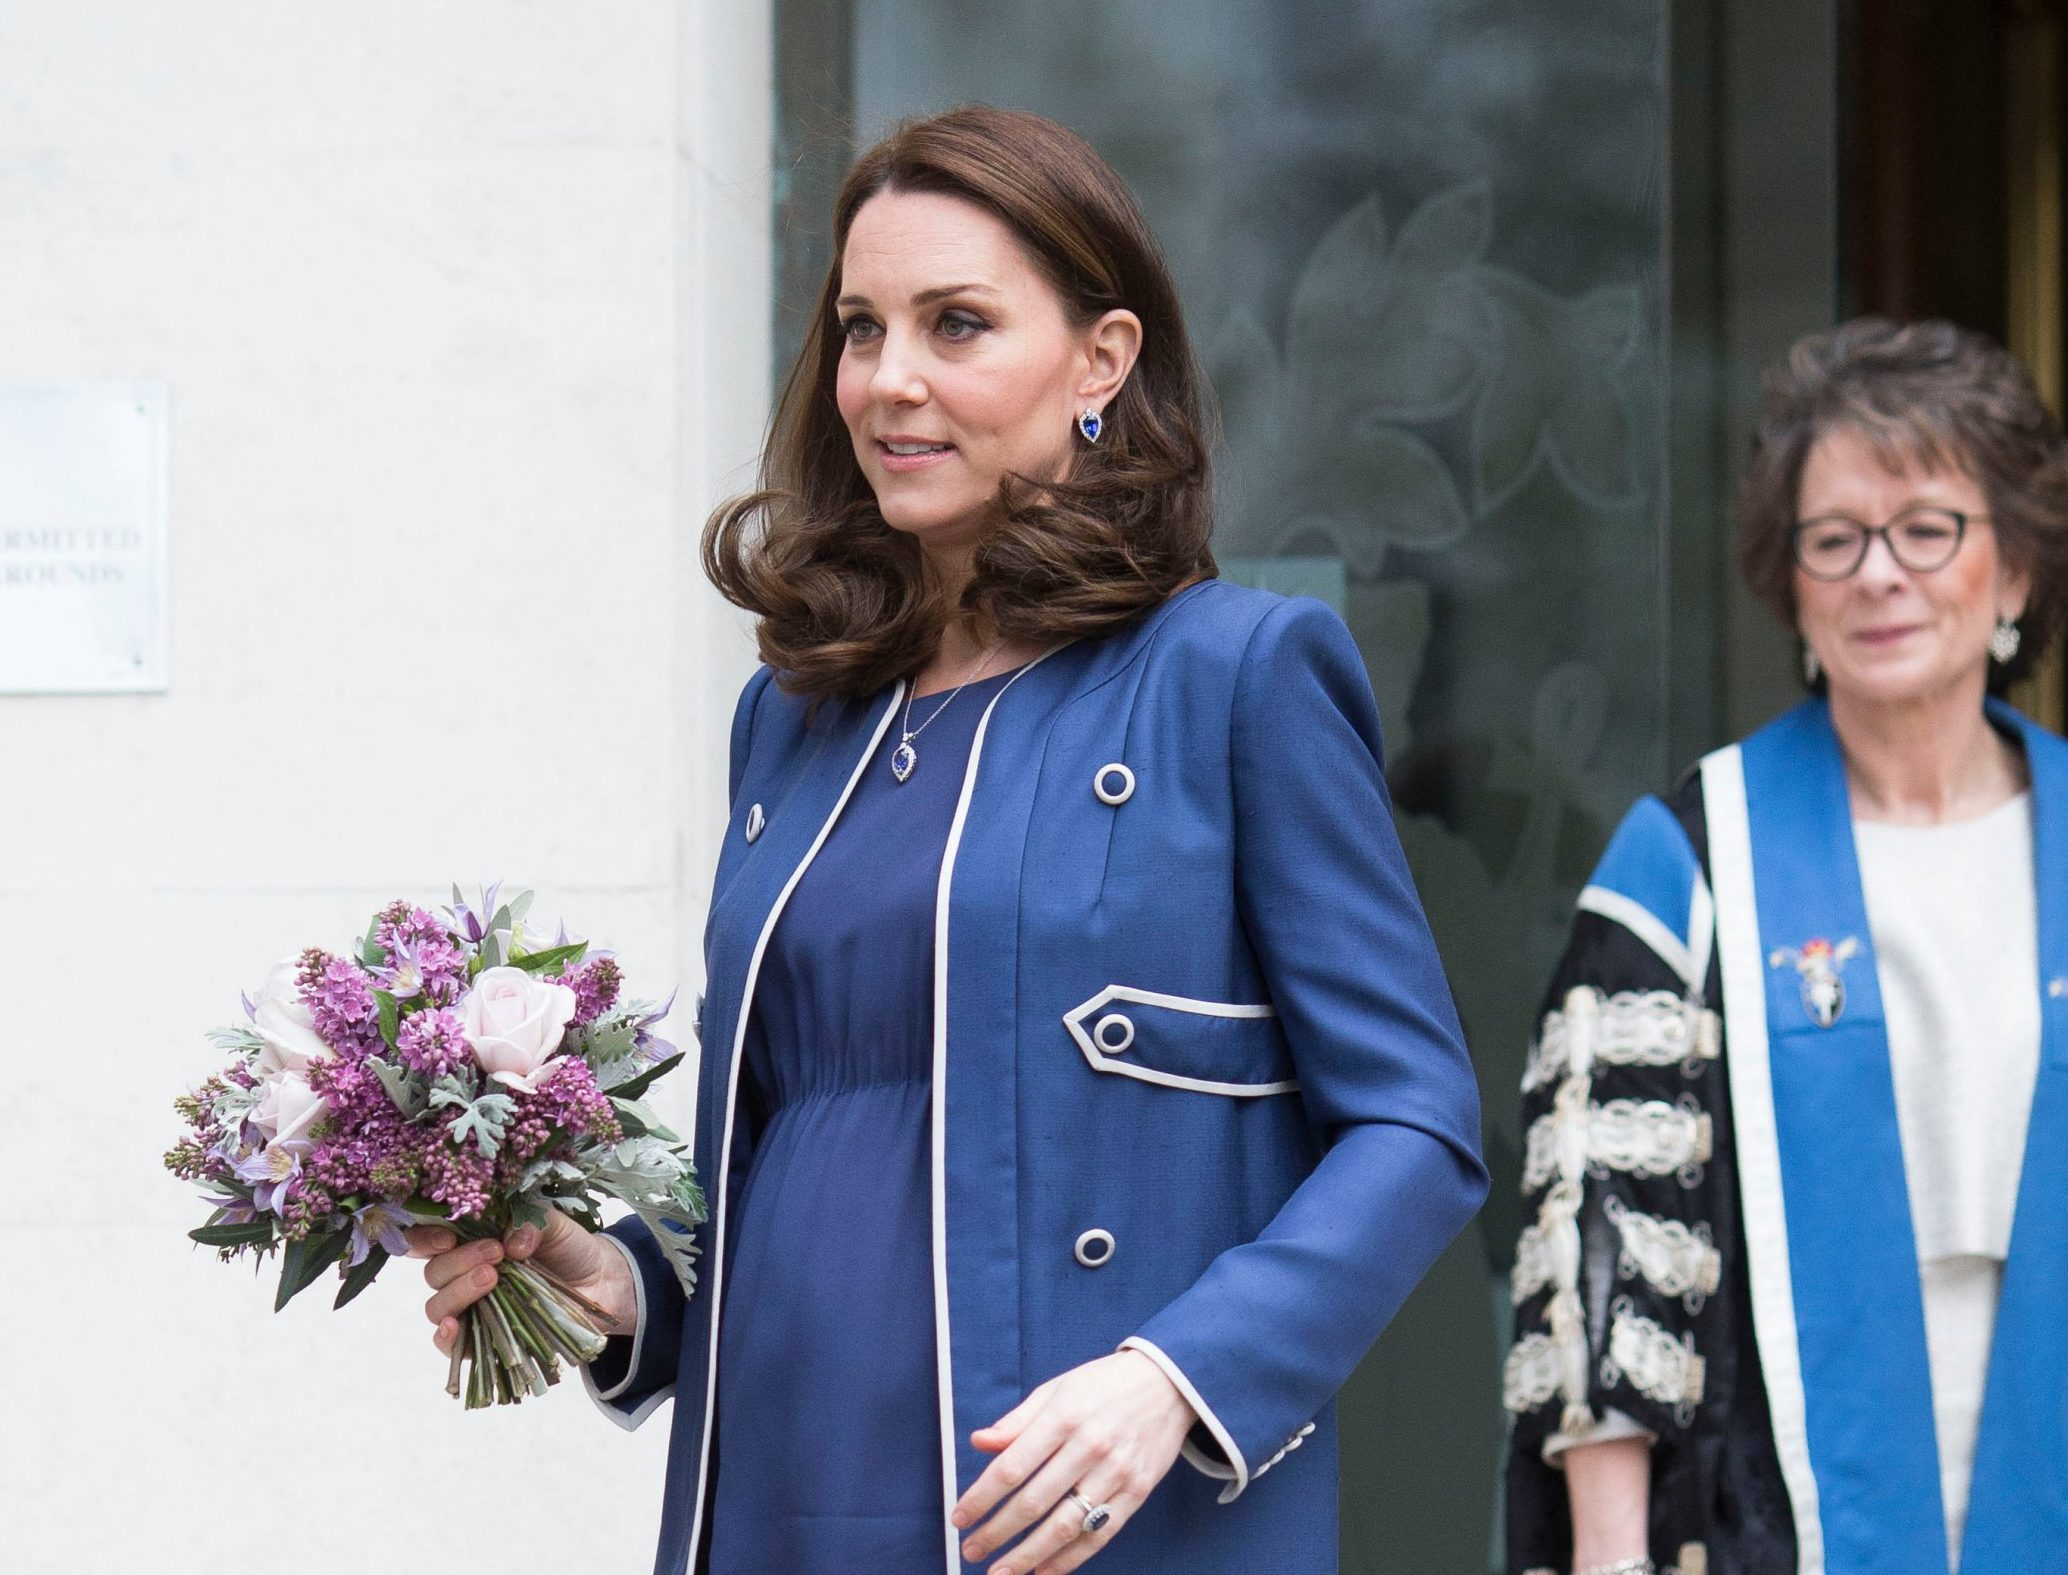 Mandatory Credit: Photo by DAVID HARTLEY/REX/Shutterstock (9439896t) Catherine Duchess of Cambridge at St Thomas' Hospital Catherine Duchess of Cambridge visits the Royal College of Obstetricians and Gynaecologists, London, UK - 27 Feb 2018